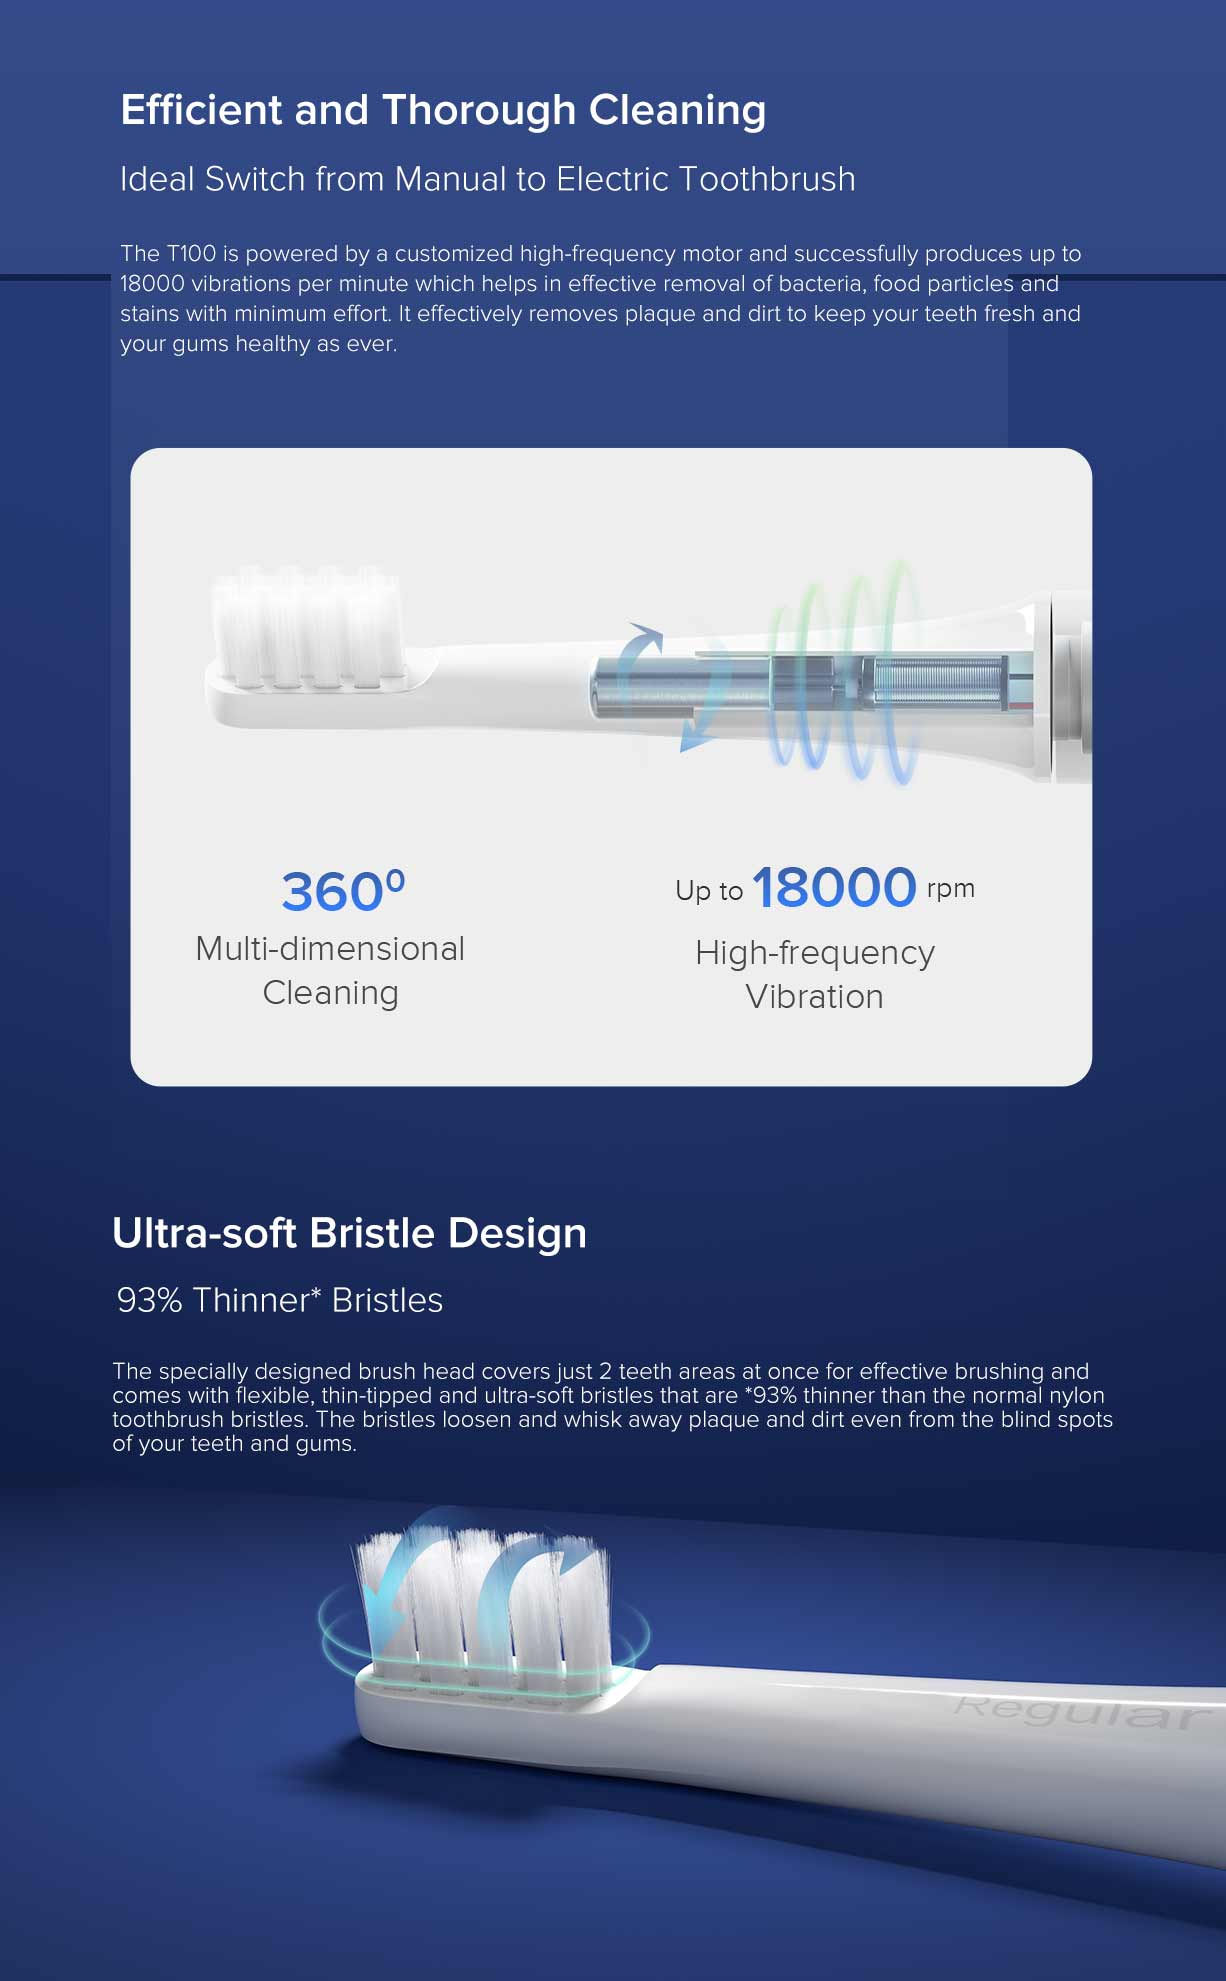 mi-electric-toothbrush-T100-efficient-cleaning